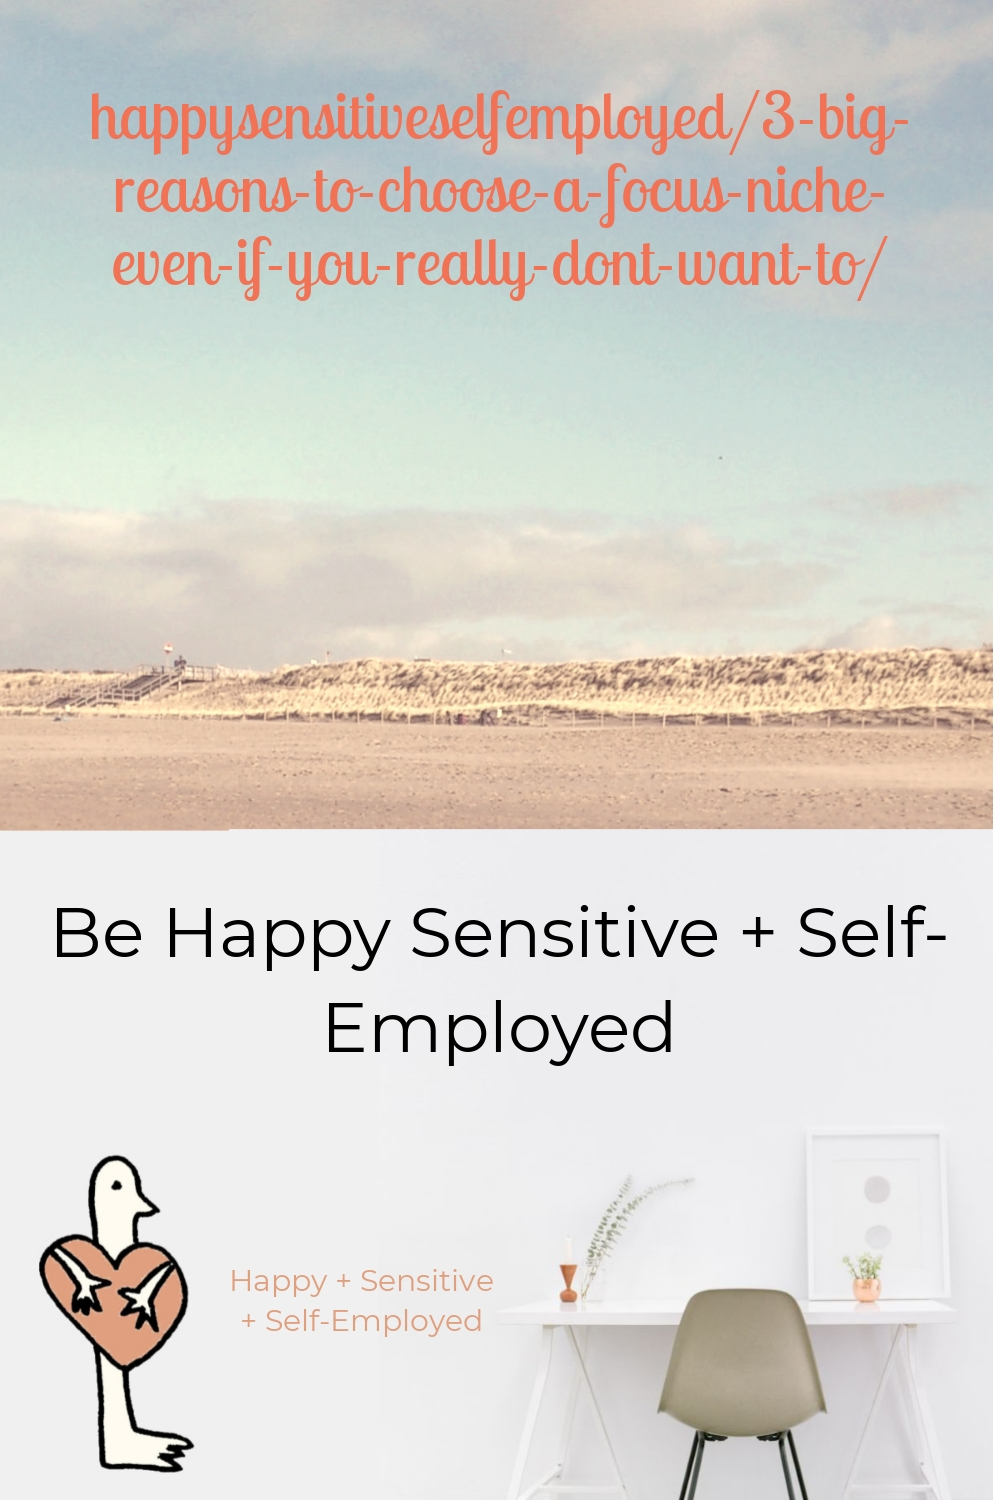 happysensitiveselfemployed/3-big-reasons-to-choose-a-focus-niche-even-if-you-really-dont-want-to/